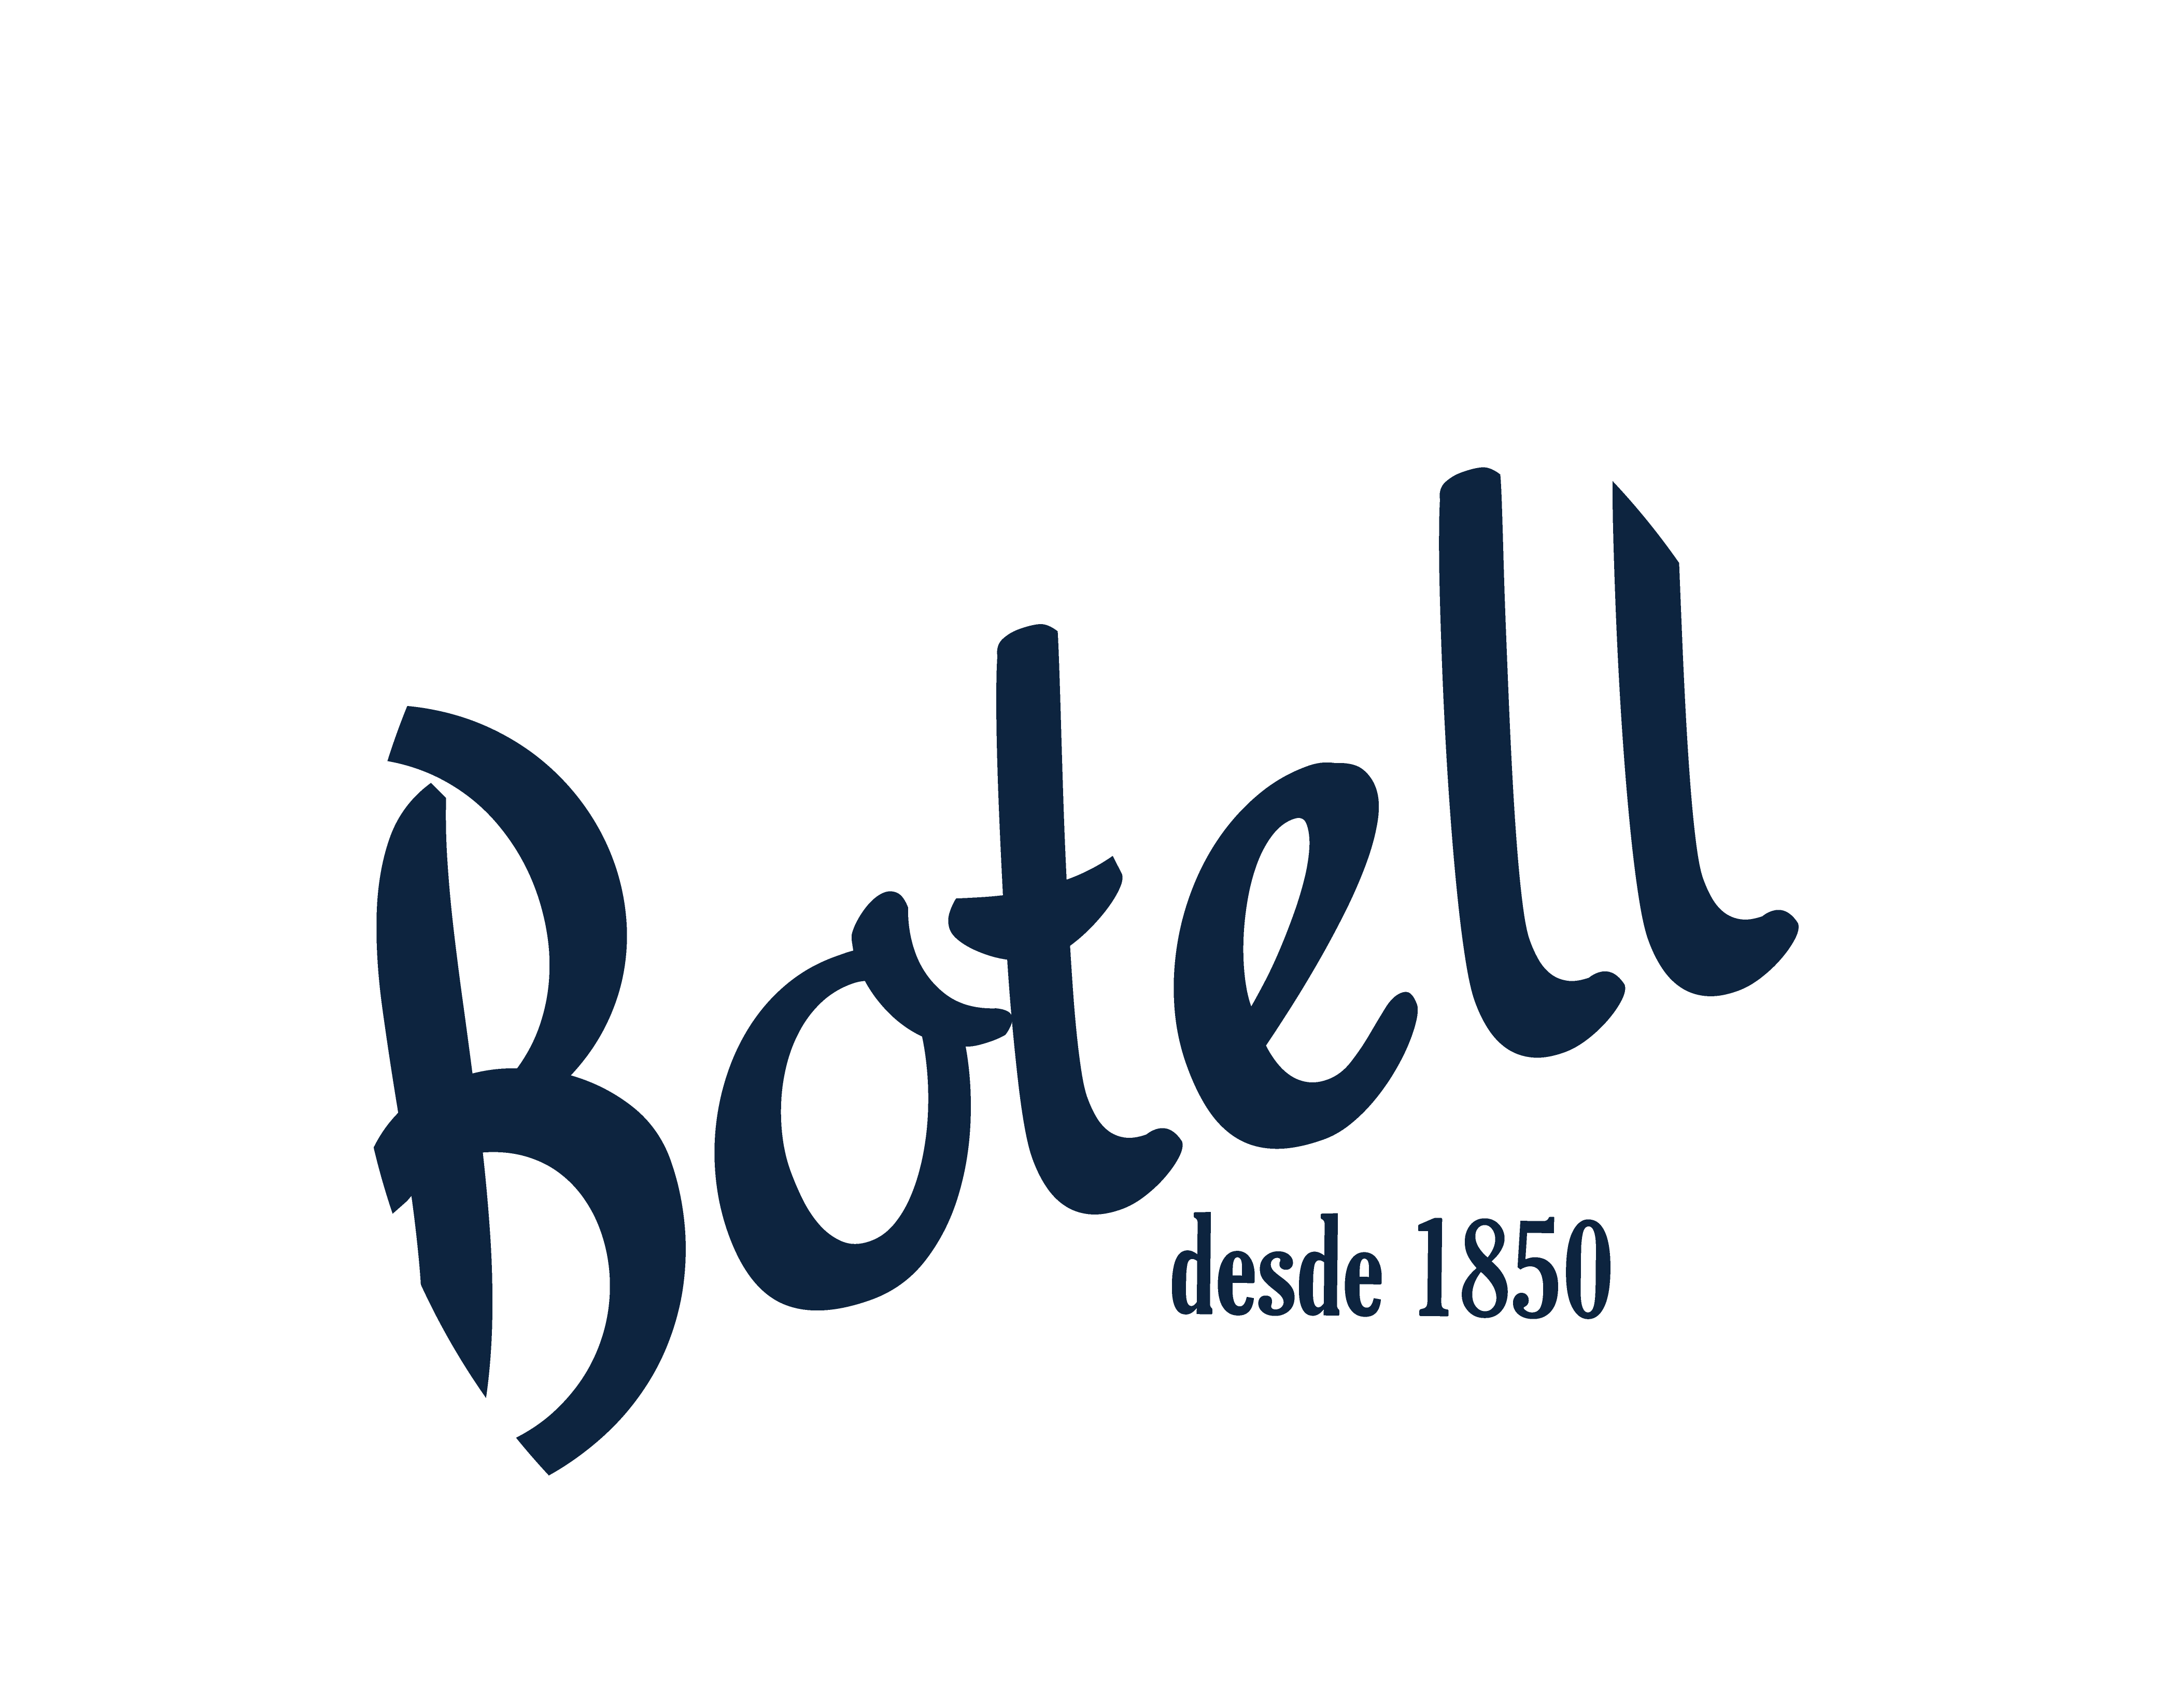 Imprenta Botella